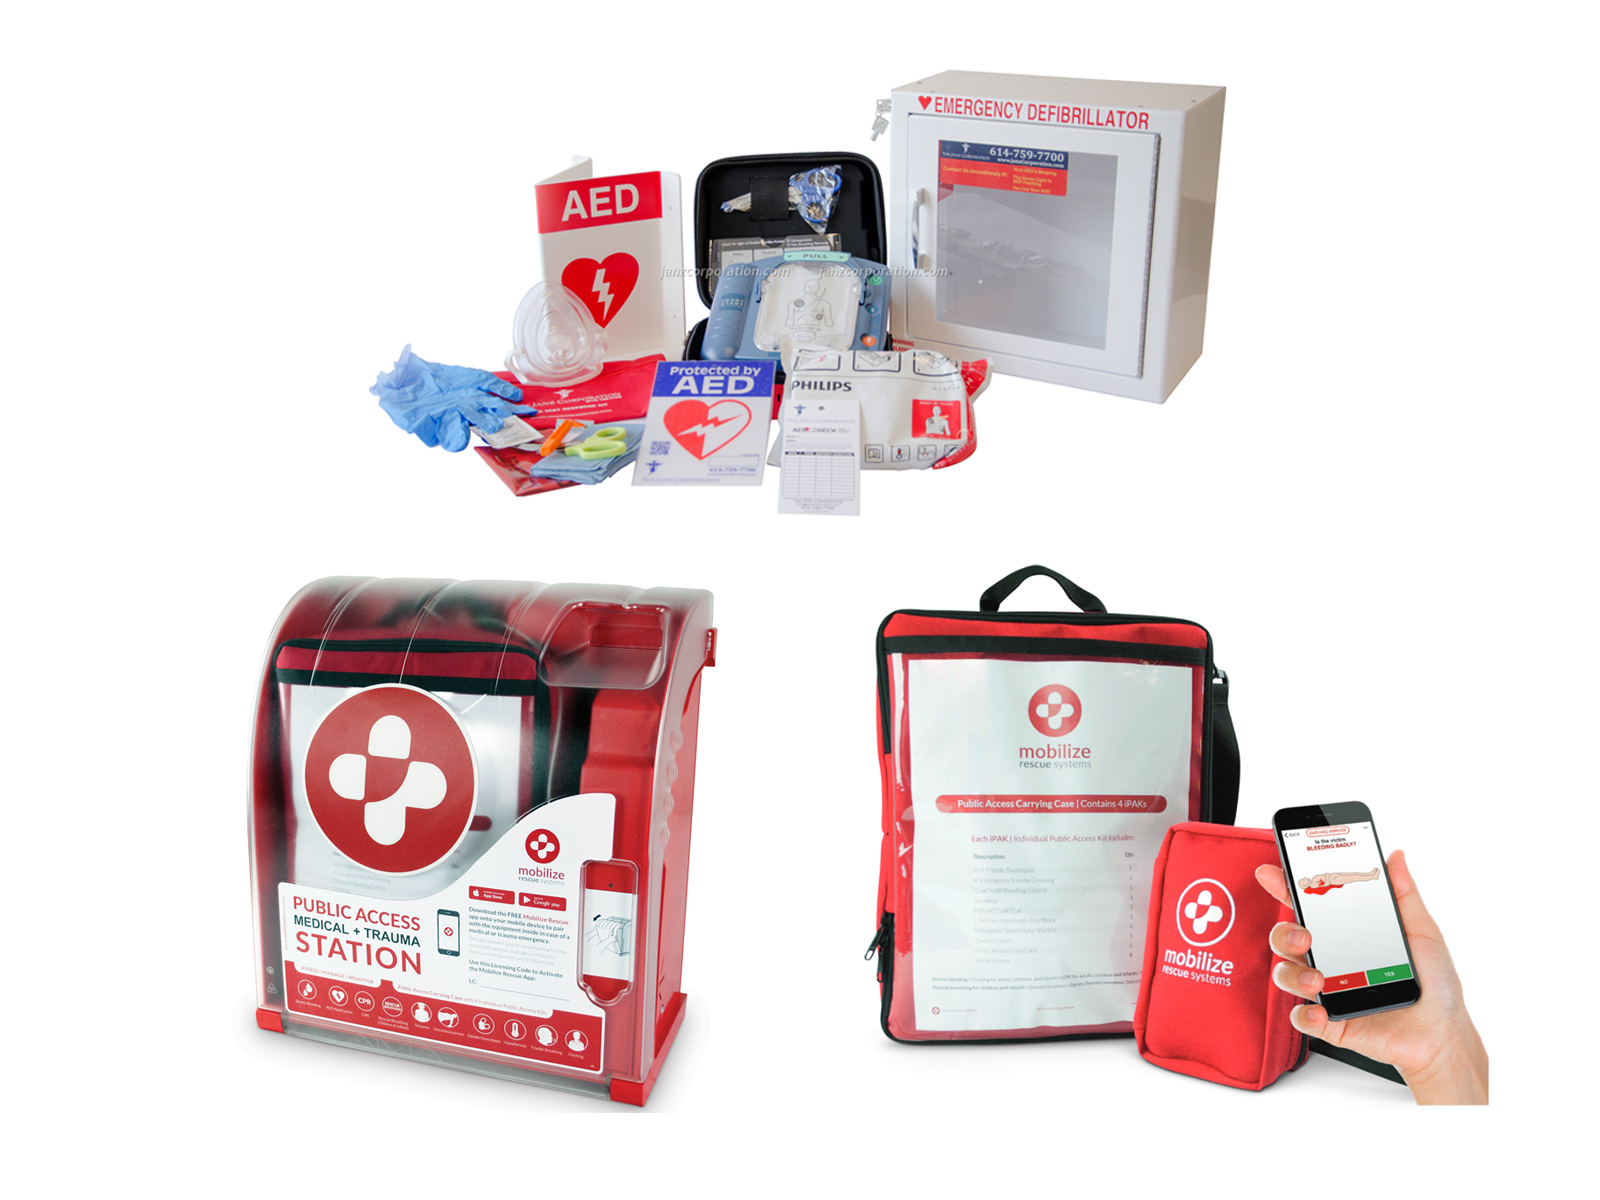 The Janz Corporation Partners with Mobilize Rescue Systems to Increase Medical Emergency Response Capabilities Alongside AEDs